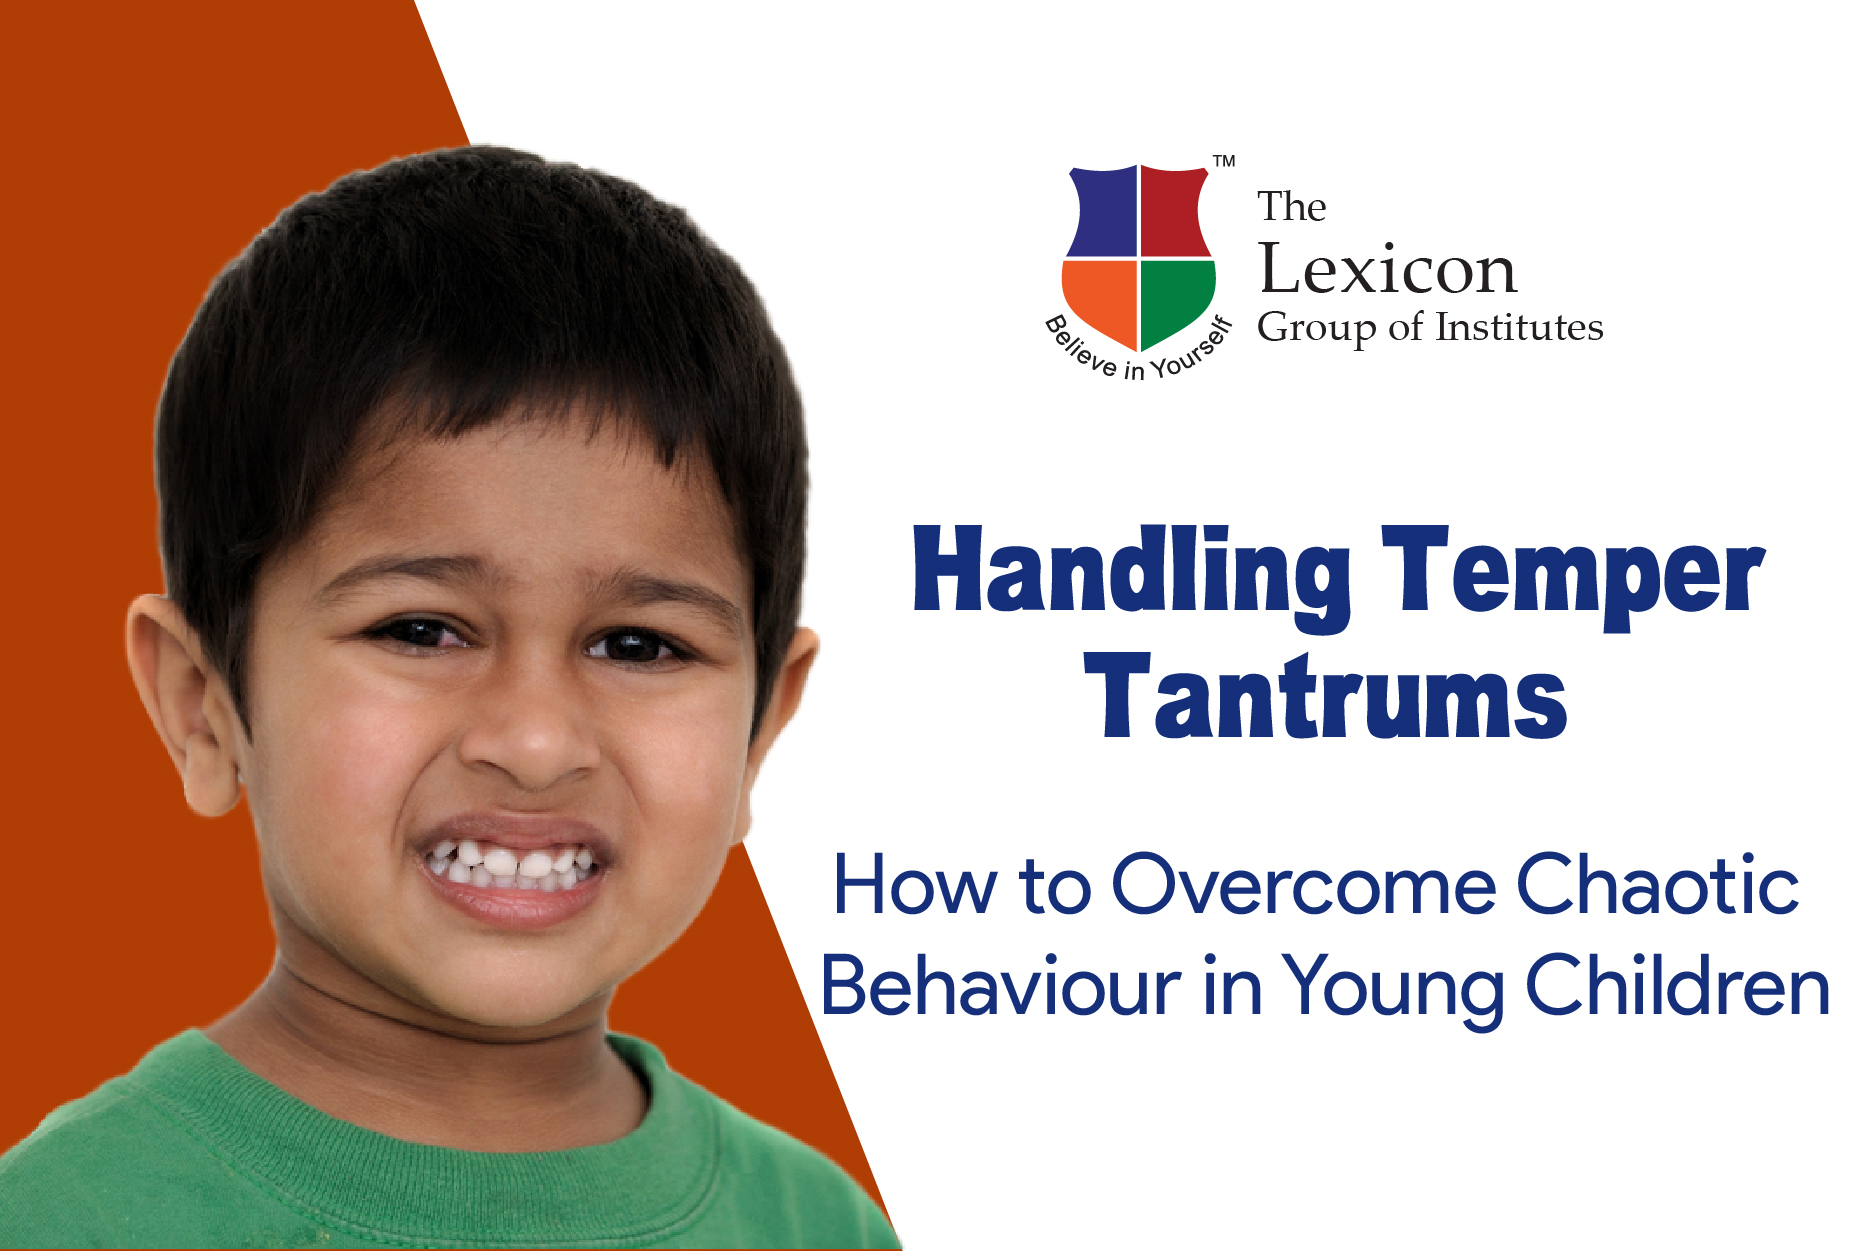 Handling Temper Tantrums- How to Overcome Chaotic Behaviour in Young Children